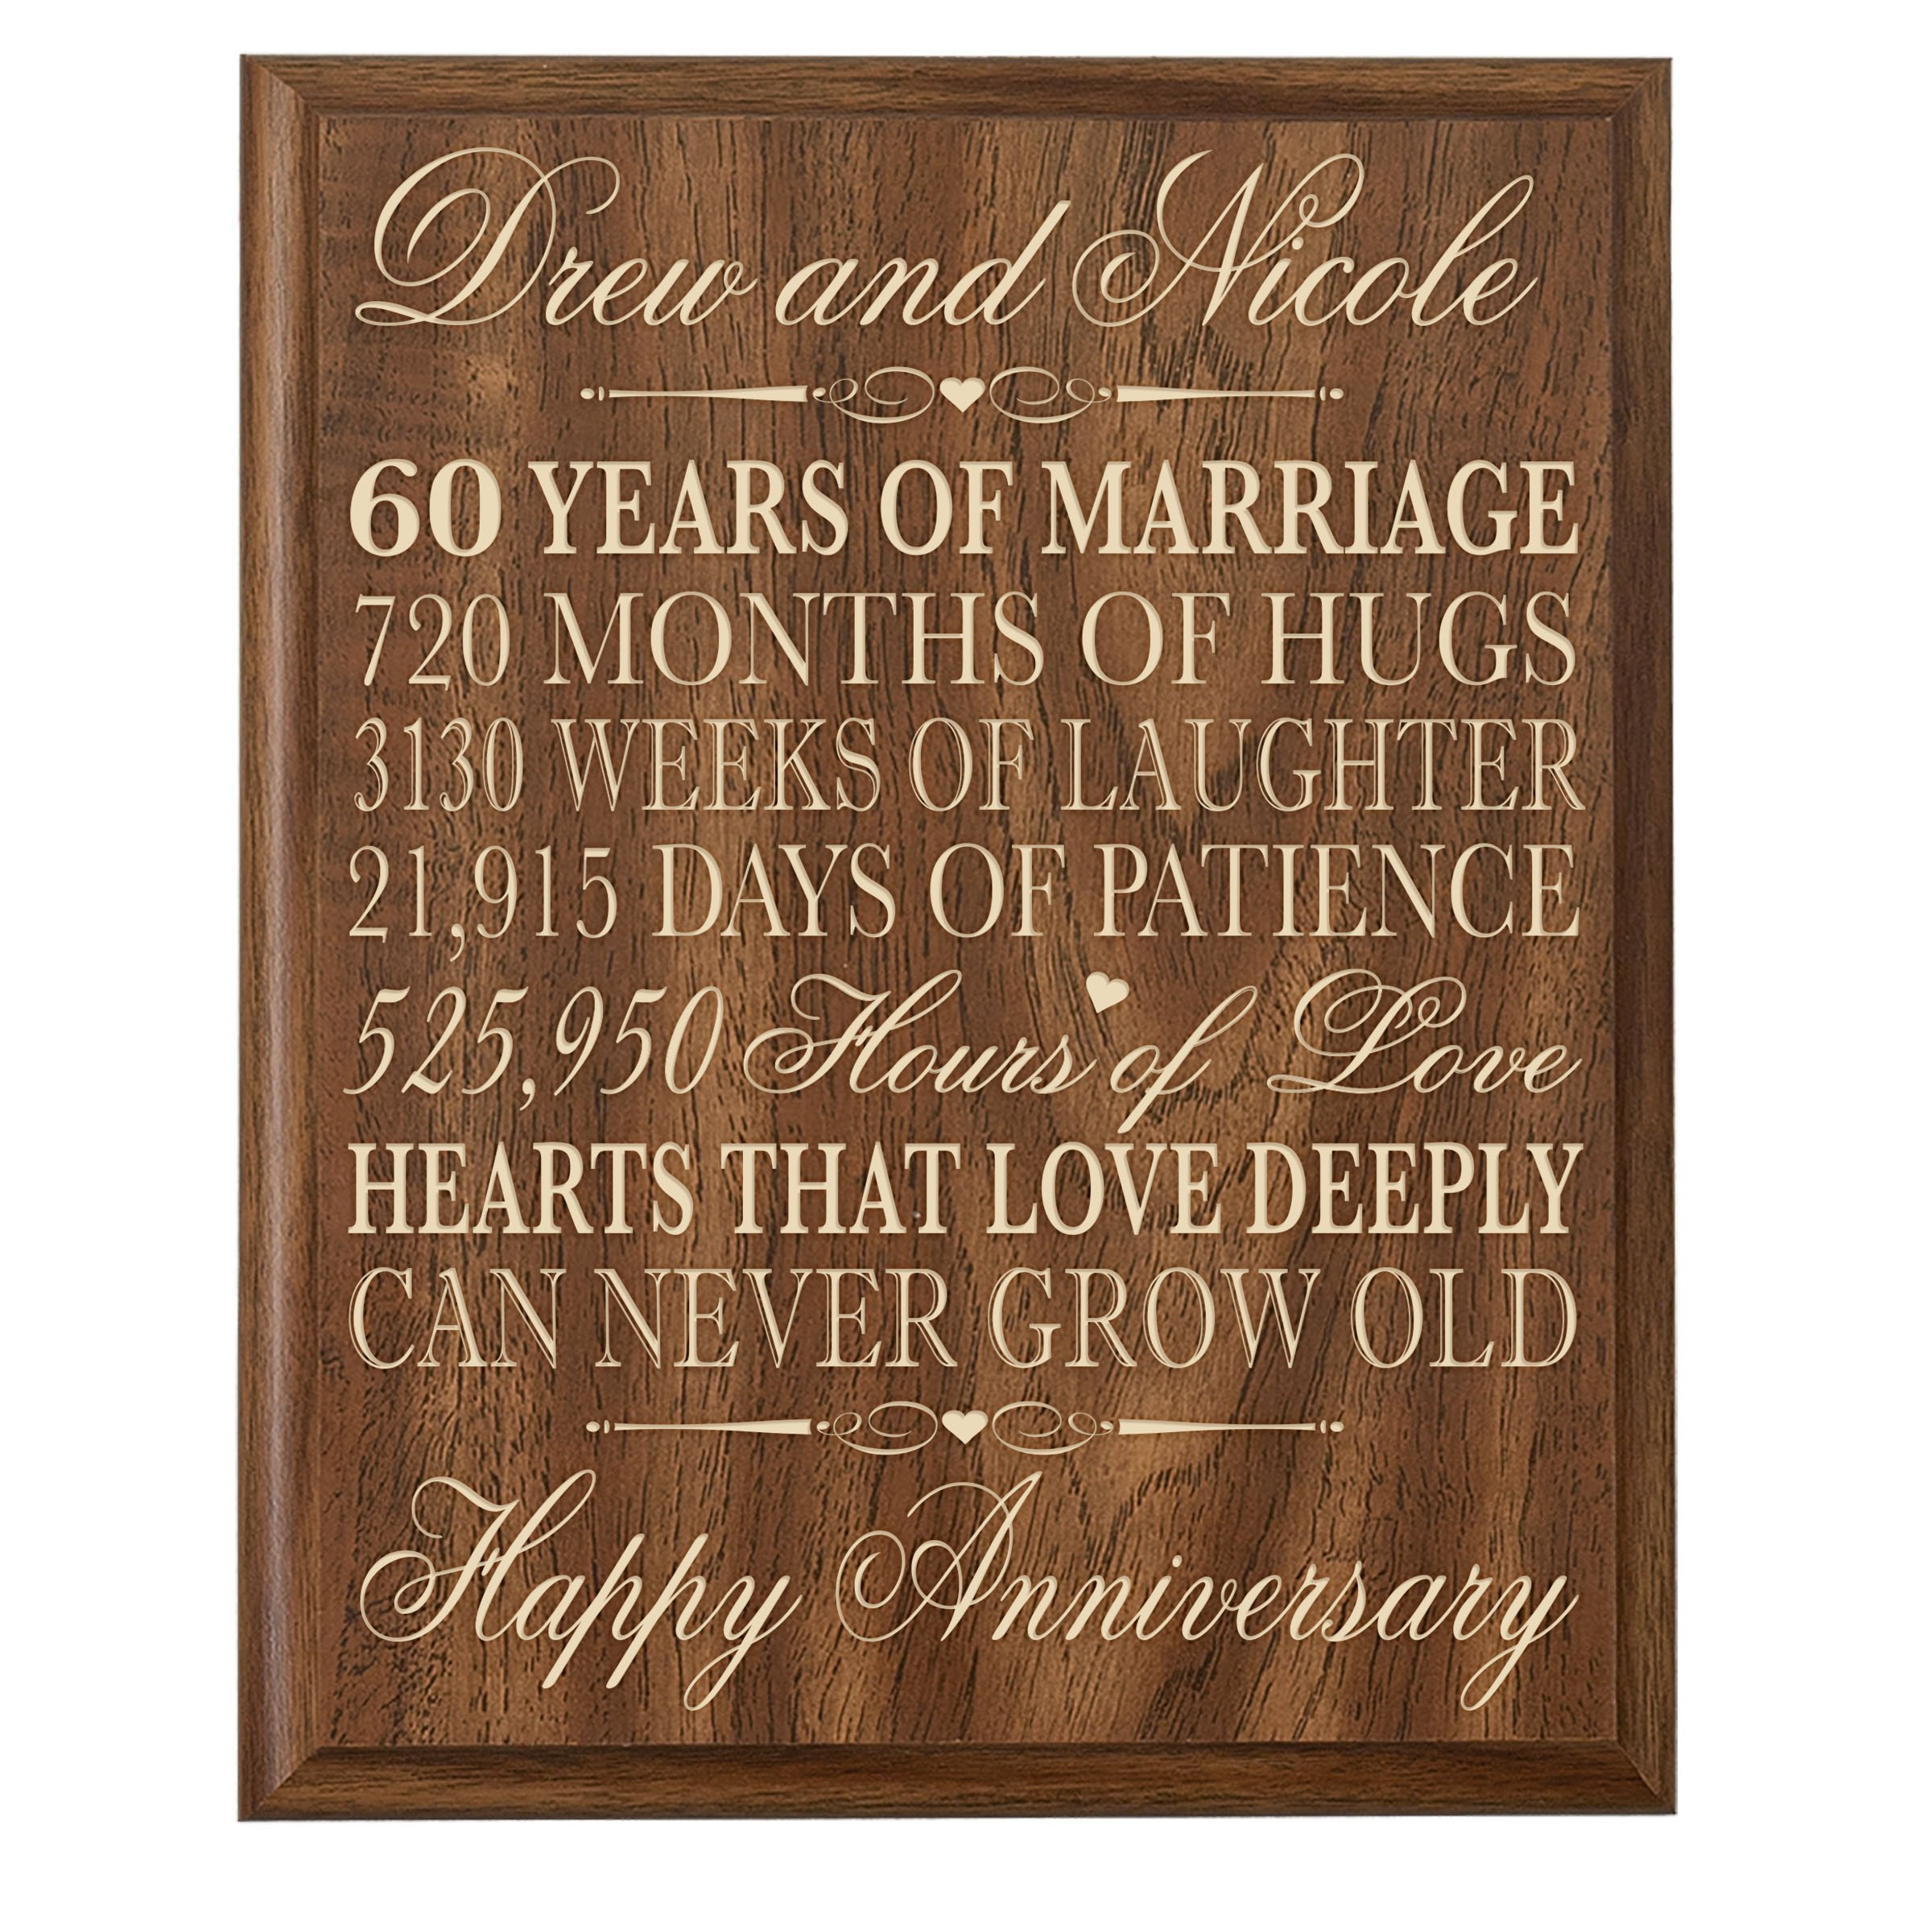 Personalized 60th Parent Wedding Anniversary Wall Plaque Gifts for Couple, Custom Made 60th Anniversary Gifts